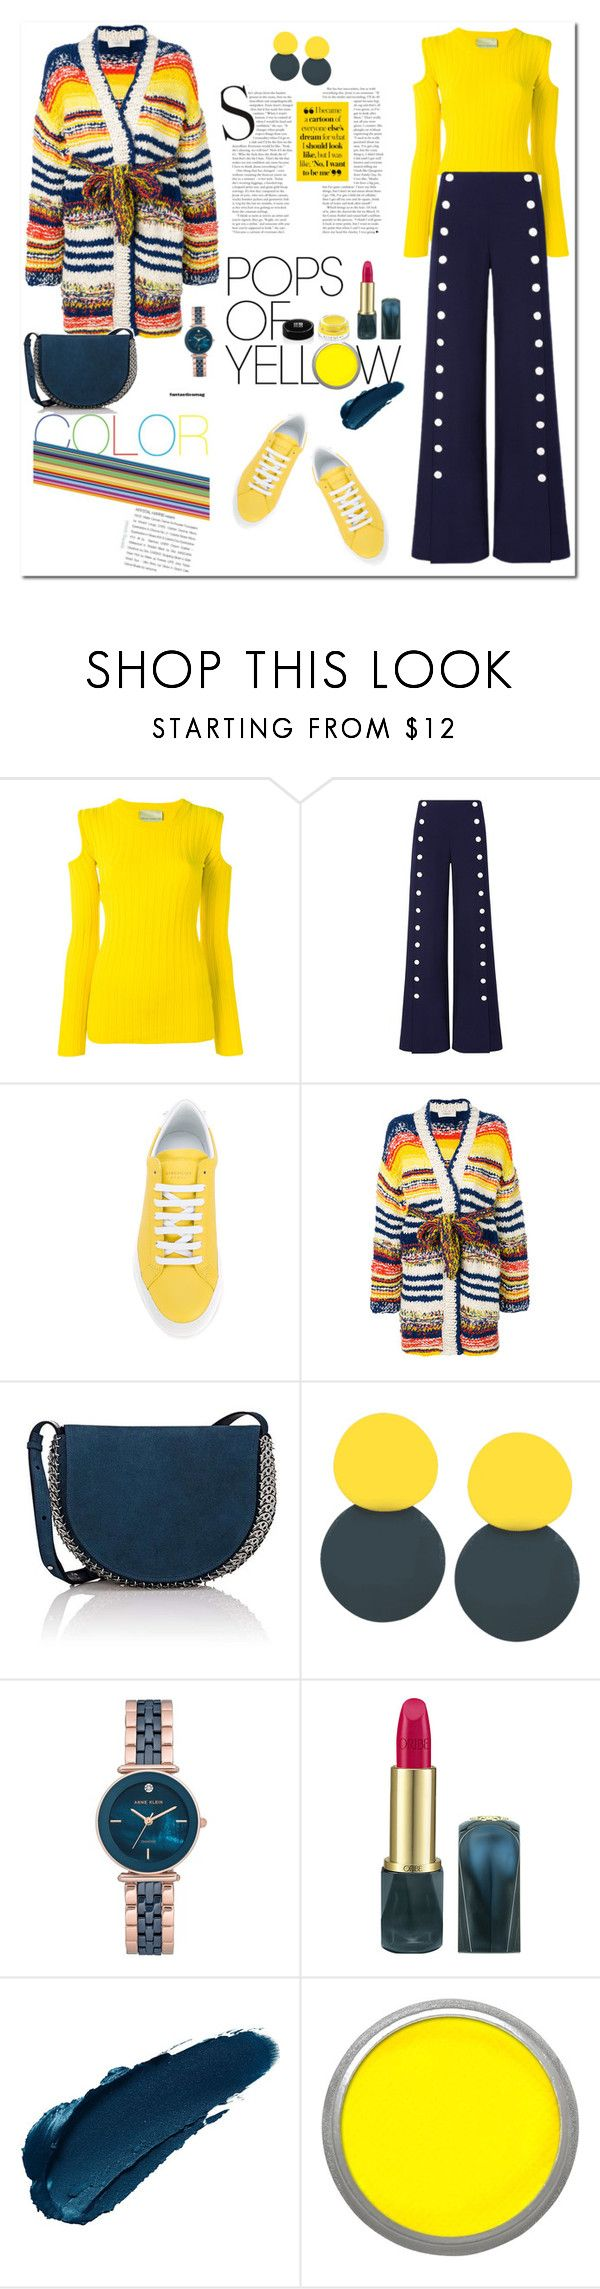 """""""Pops of Yellow Style"""" by ellie366 ❤ liked on Polyvore featuring Erika Cavallini Semi-Couture, Tory Burch, Givenchy, Pringle of Scotland, Paco Rabanne, Anne Klein, Oribe, Suva Beauty, stripes and sneakers"""